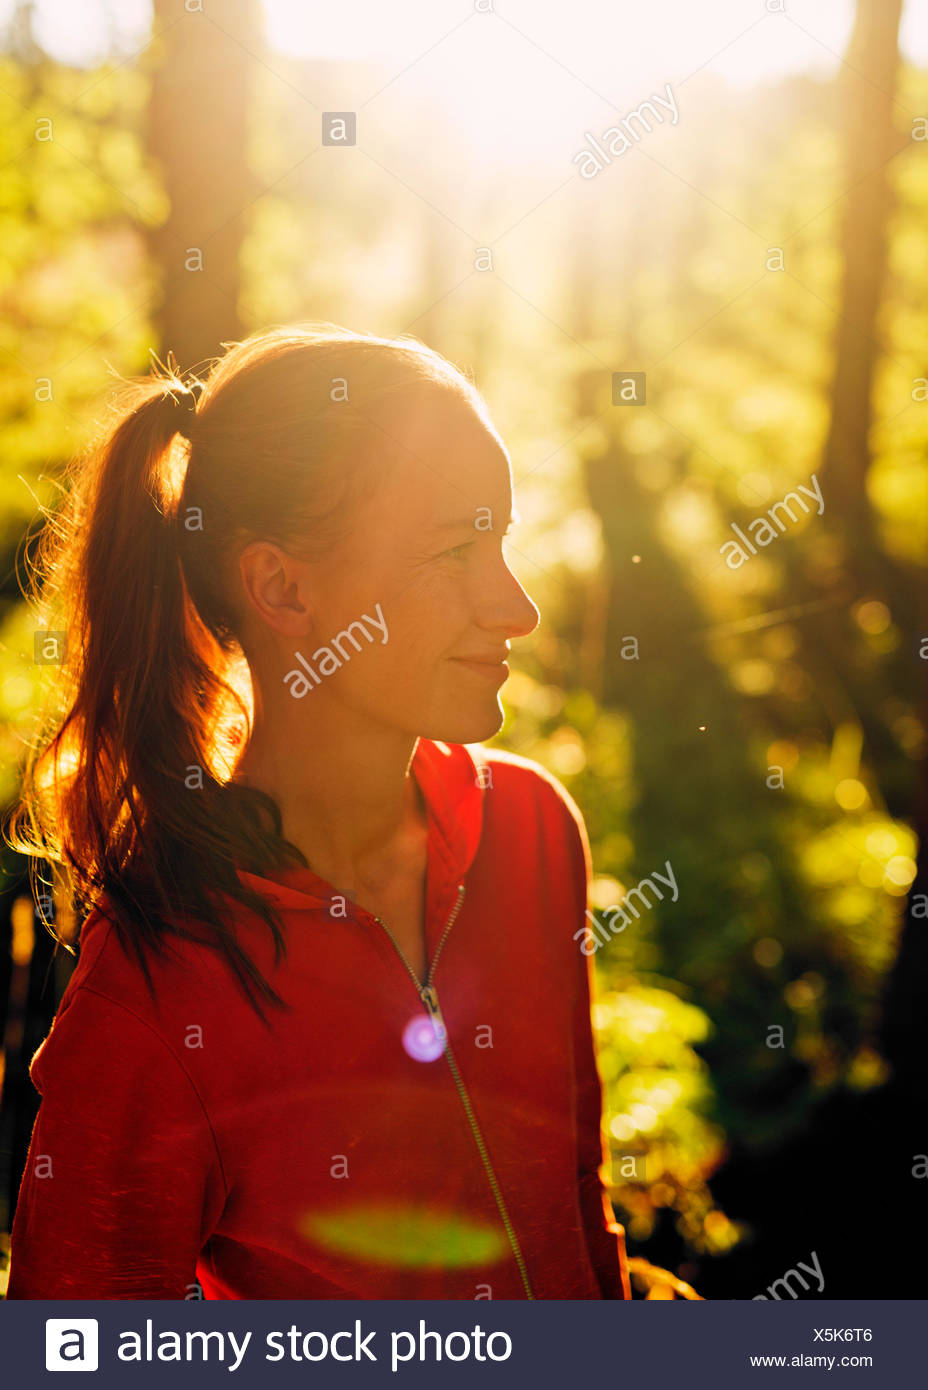 Finland, Paijat-Hame, Heinola, Mid-adult woman in forest - Stock Image